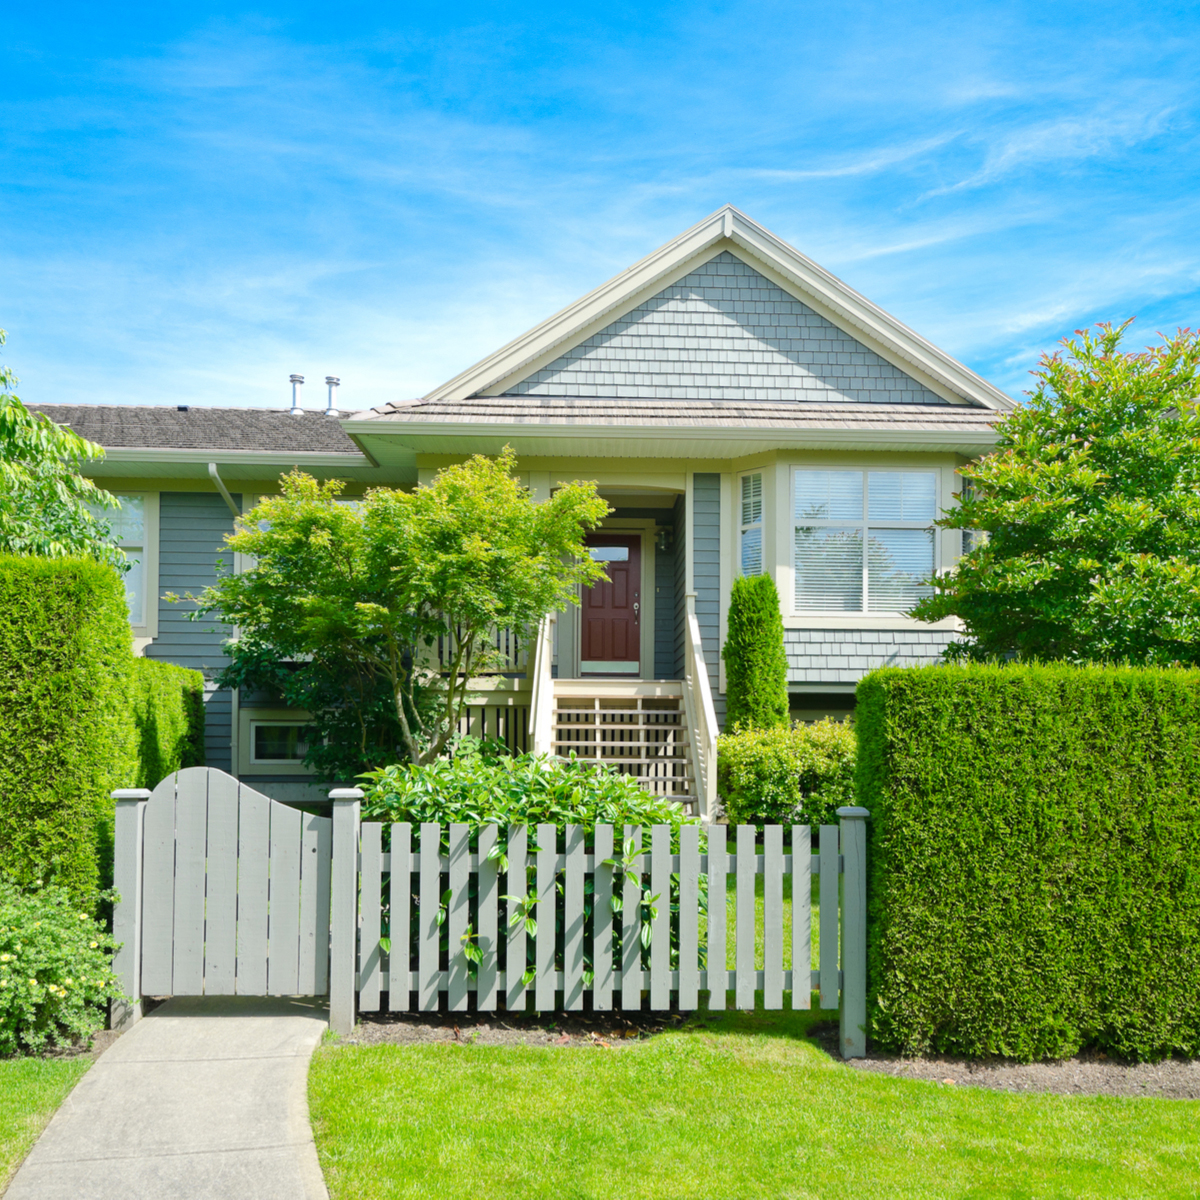 Slow growing hedges are very desirable in a property. Image: romakoma / Shutterstock